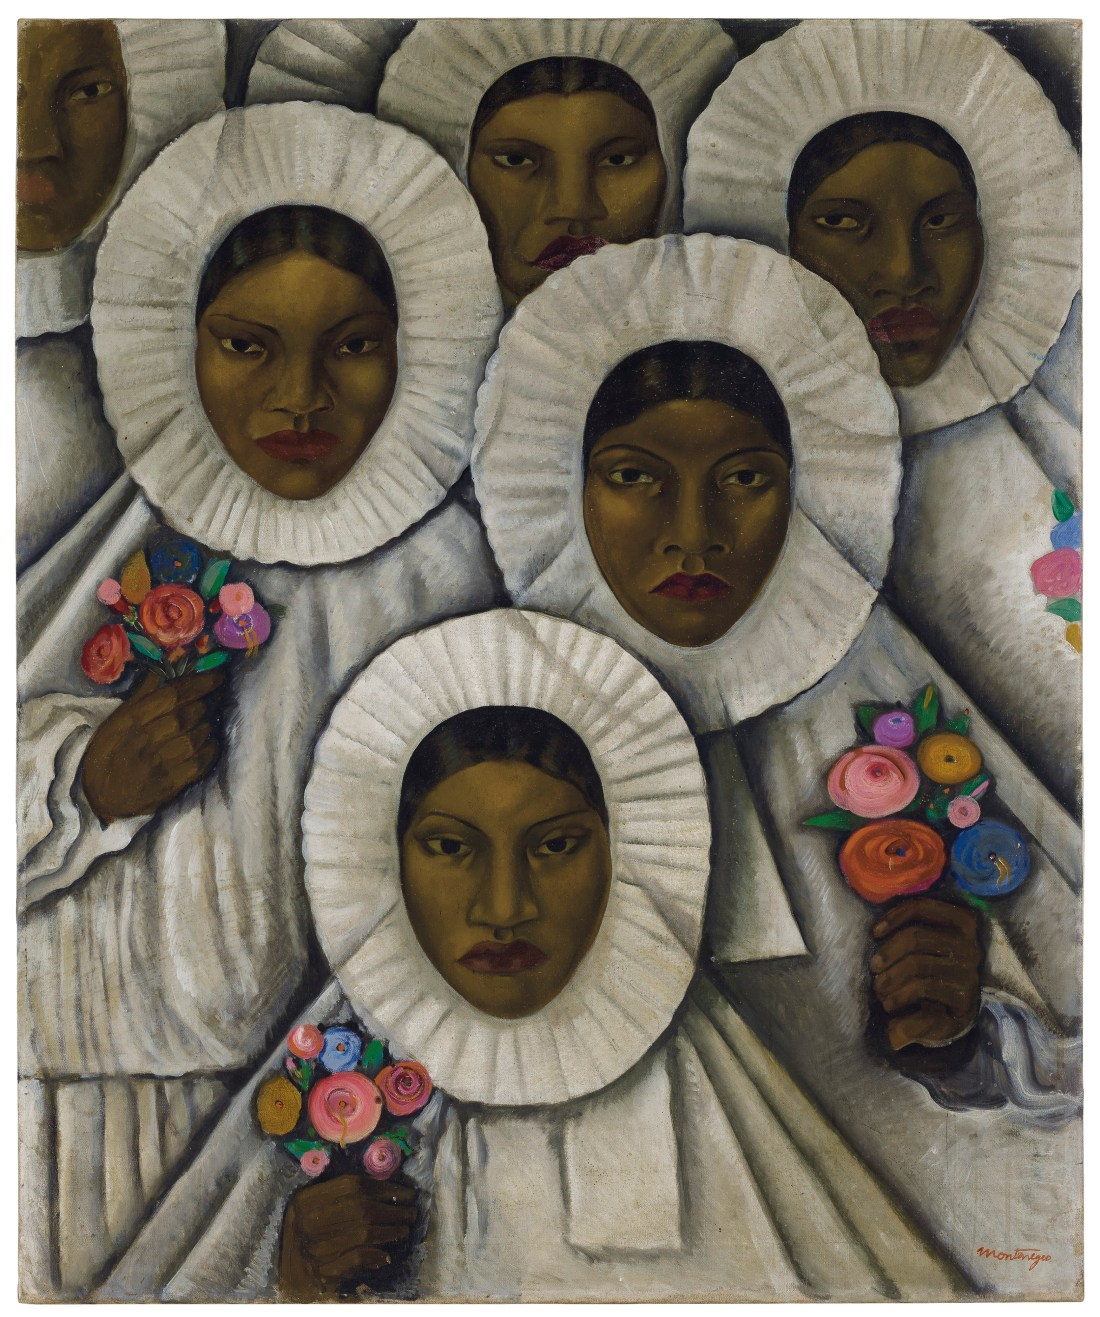 "Roberto Montenegro's ""Untitled (Tehuanas in Traditional Huipil Grande Headdresses)"" features at least six Mexican women in regional dress that frames their faces in white rings of cloth. They carry colorful bouquets. Though they are dressed identically in white, each woman is individual and distinct. All are somber; none smile."